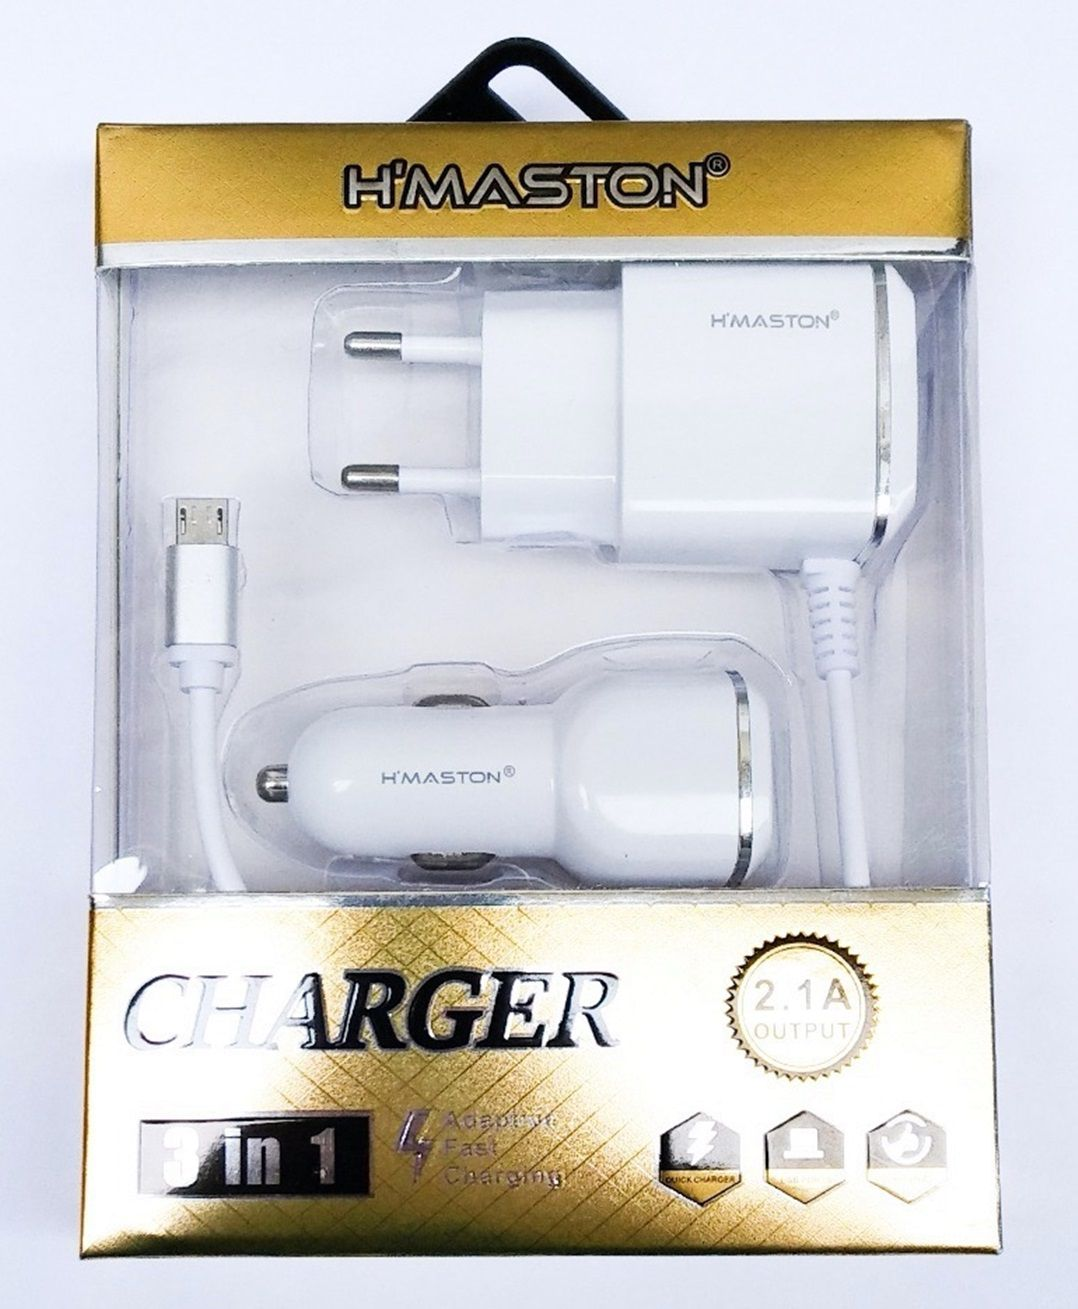 Carregador 3 in 1 micro usb 2.1 A